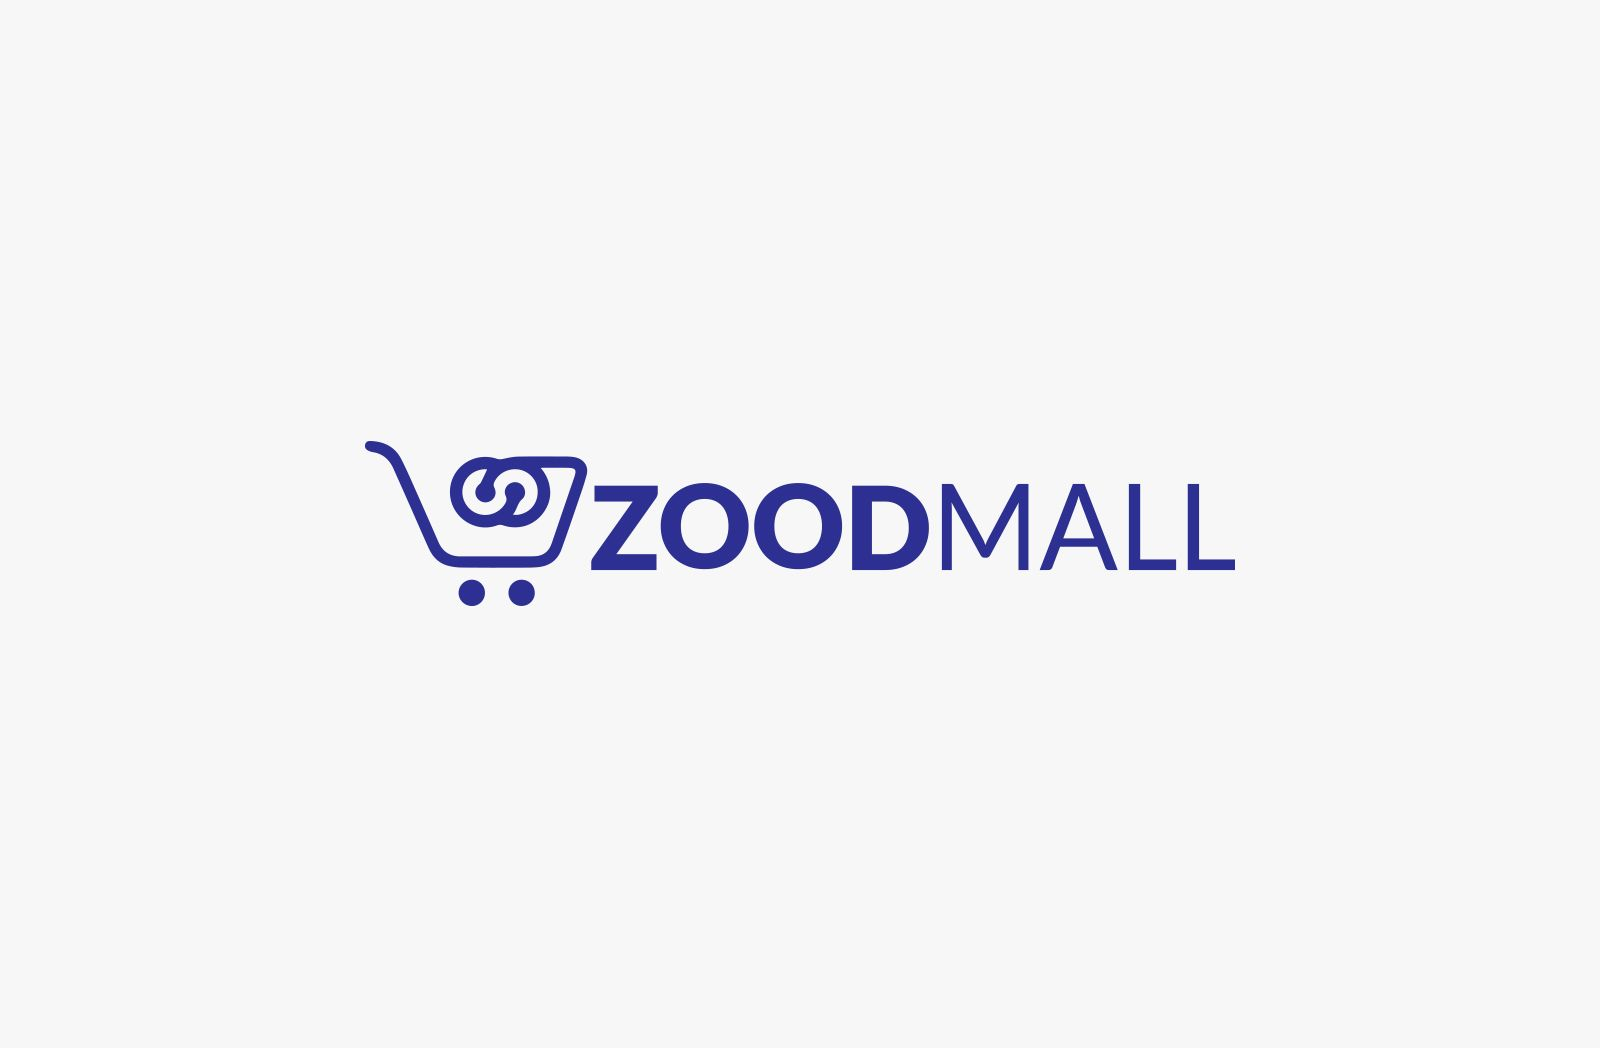 ZoodMall secures $10 million in Series A